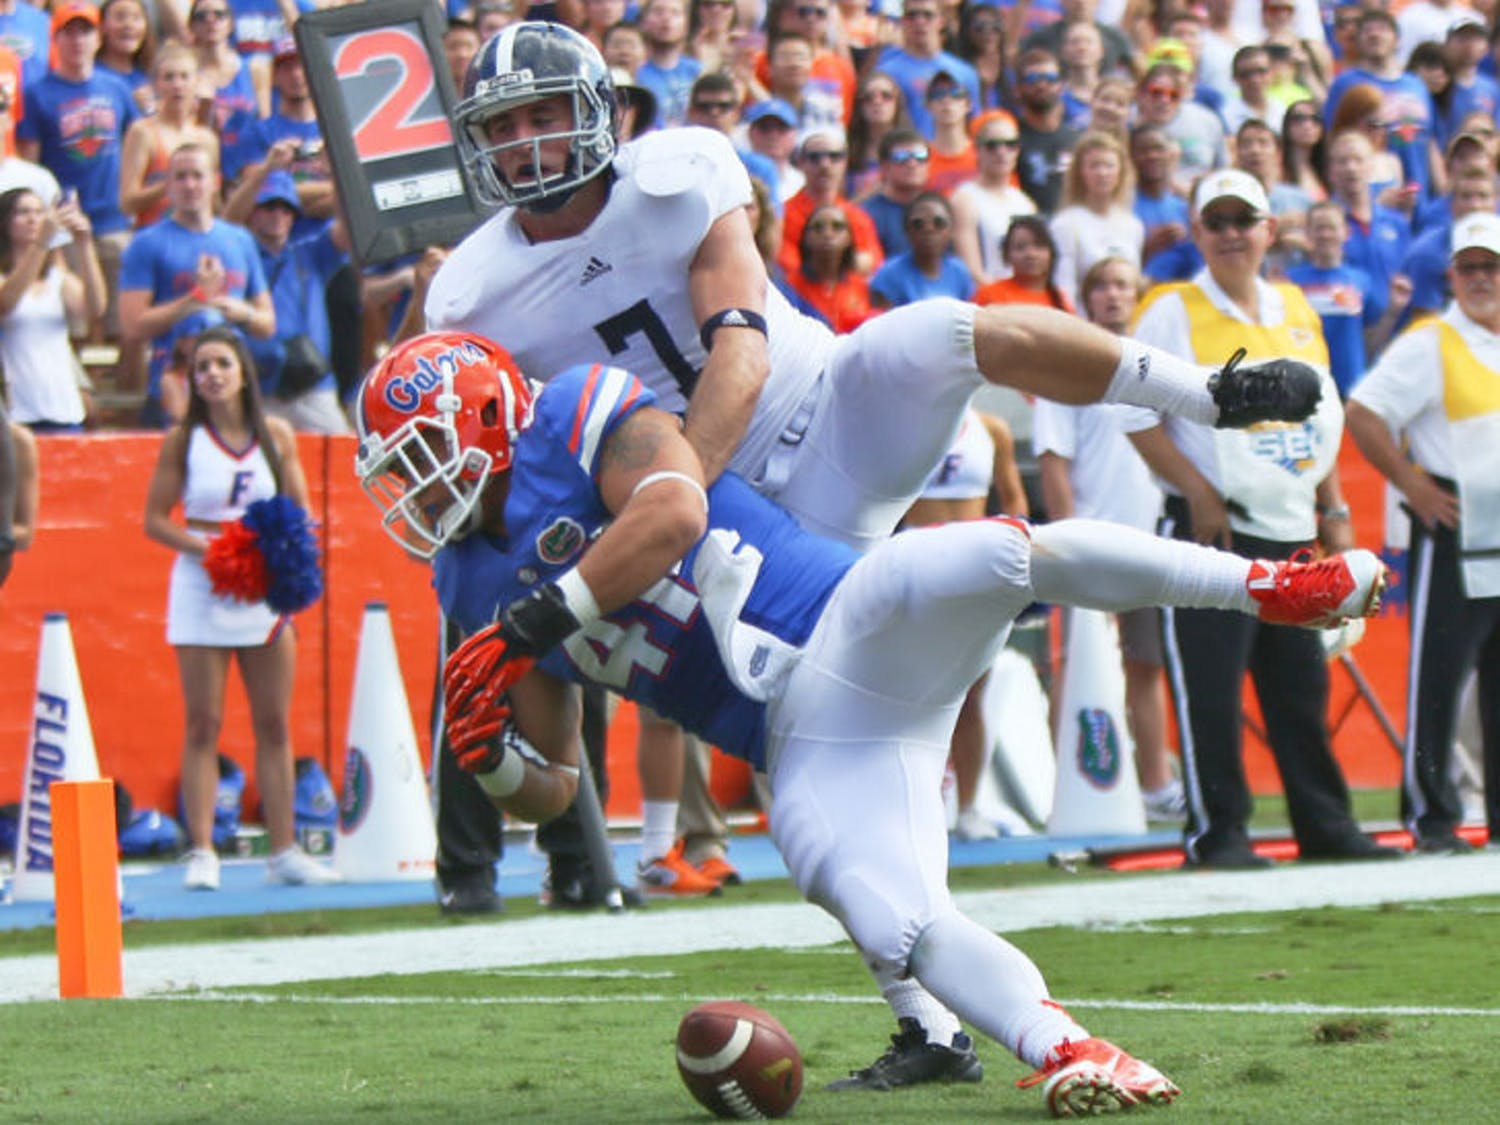 Hunter Joyer (41) drops a pass in the end zone during Florida's 26-20 loss to Georgia Southern on Saturday in Ben Hill Griffin Stadium. The Gators are 4-7 this season.